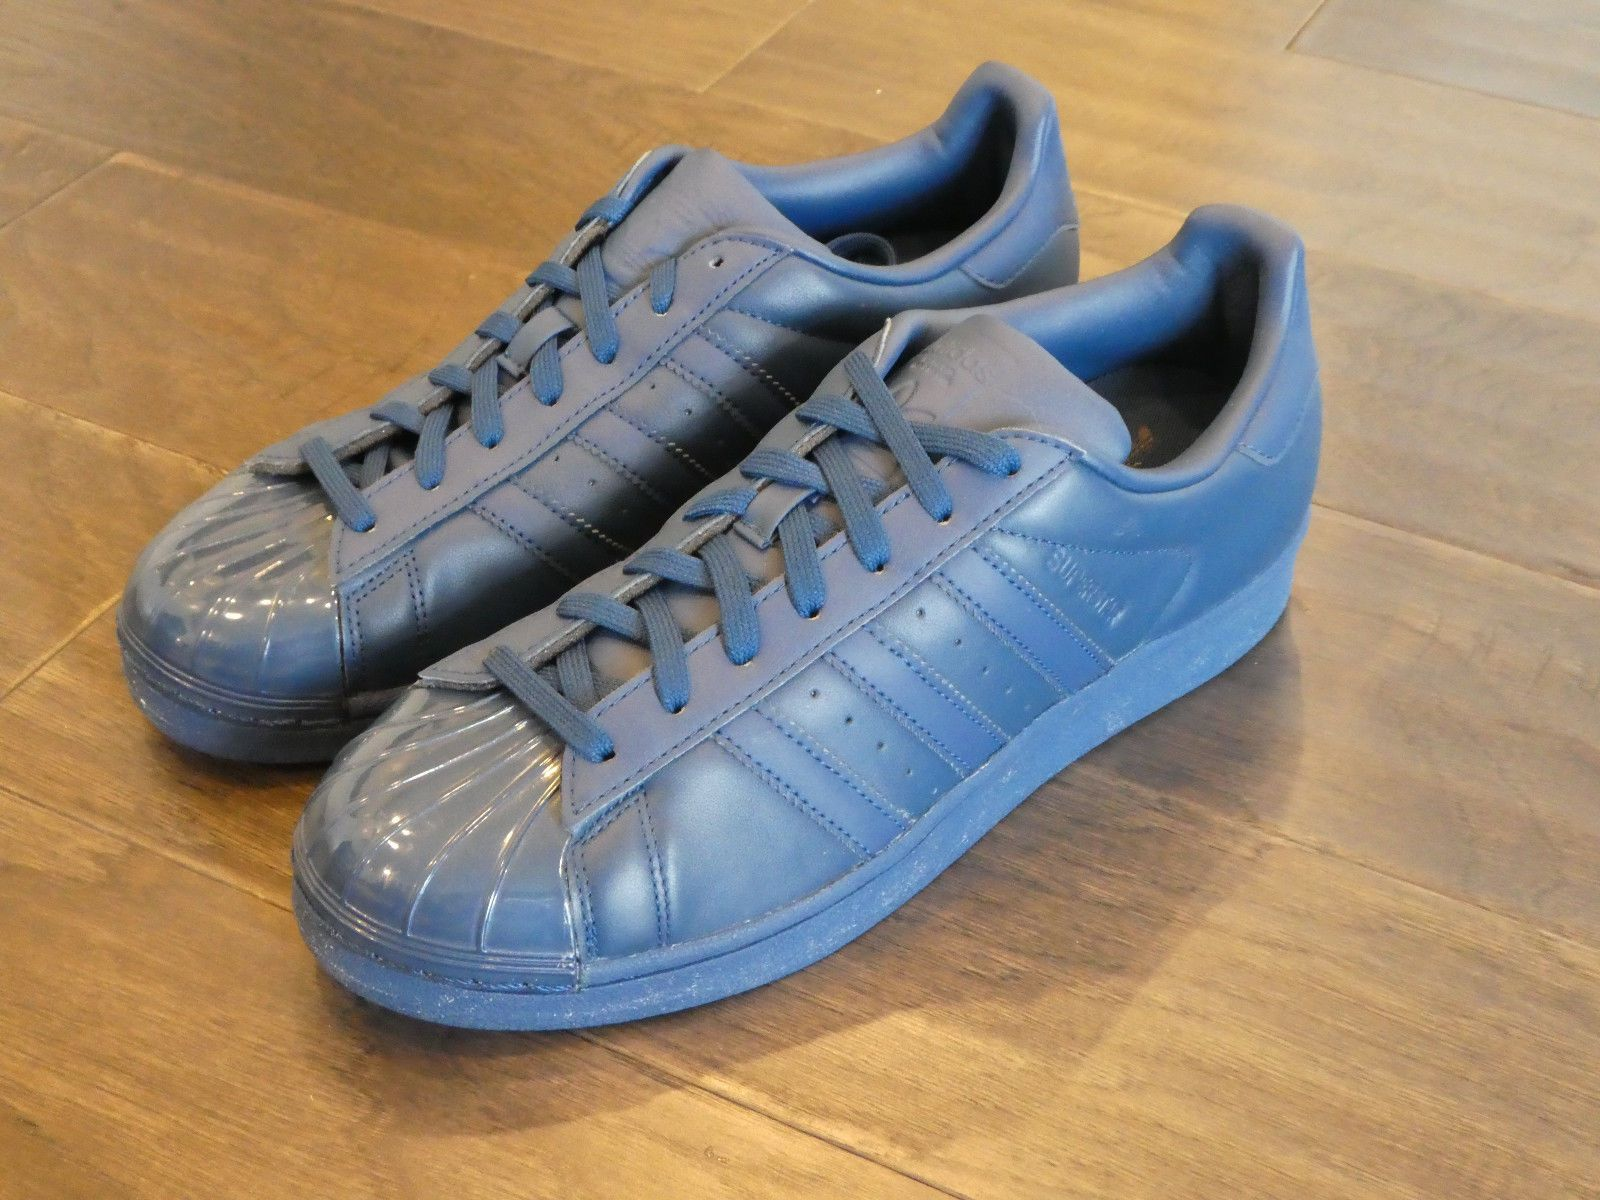 reputable site 2f97c c274c Adidas Womens Superstar Glossy Toe shoes sneakers new S76723 Tecsteel Blue